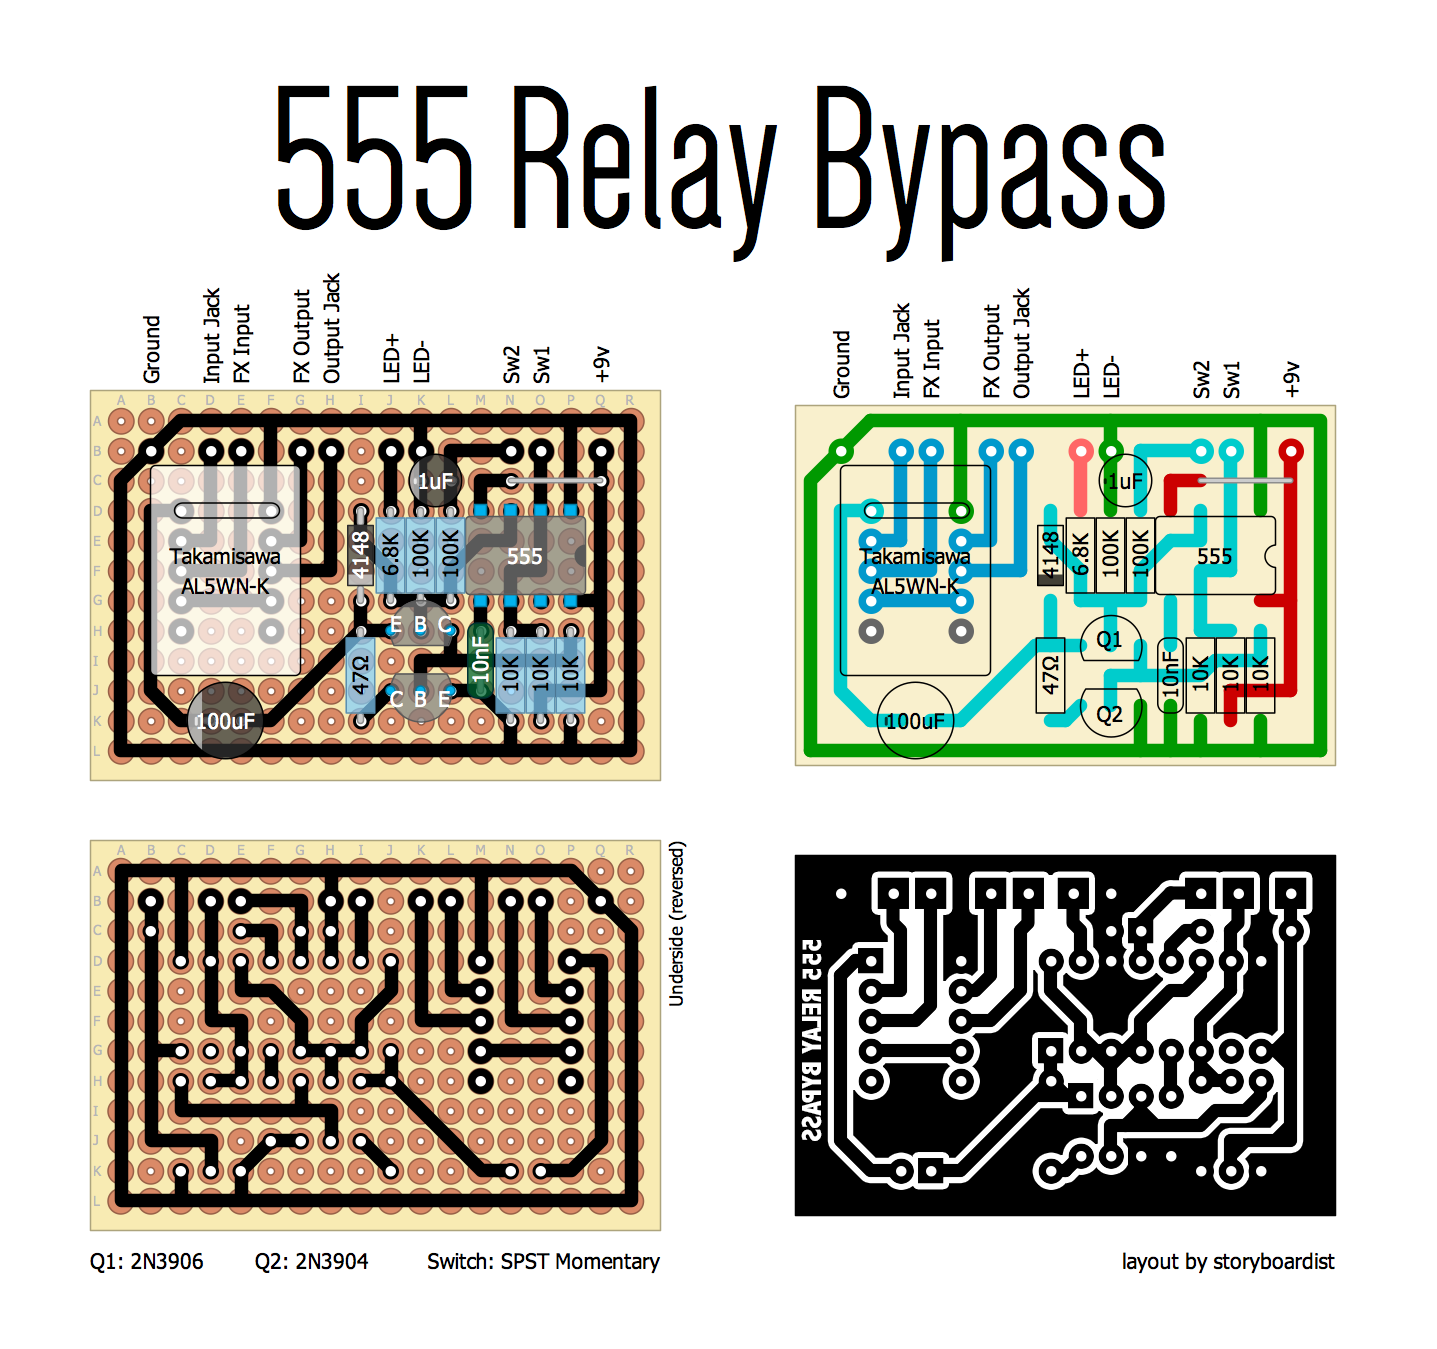 Perf And Pcb Effects Layouts 555 Relay Bypass Bistable Schematic Mictester Says That The Must Be A Takimisawa Al5wn K But They Are Easily Found On Ebay Other Vendors Further Discussion Can